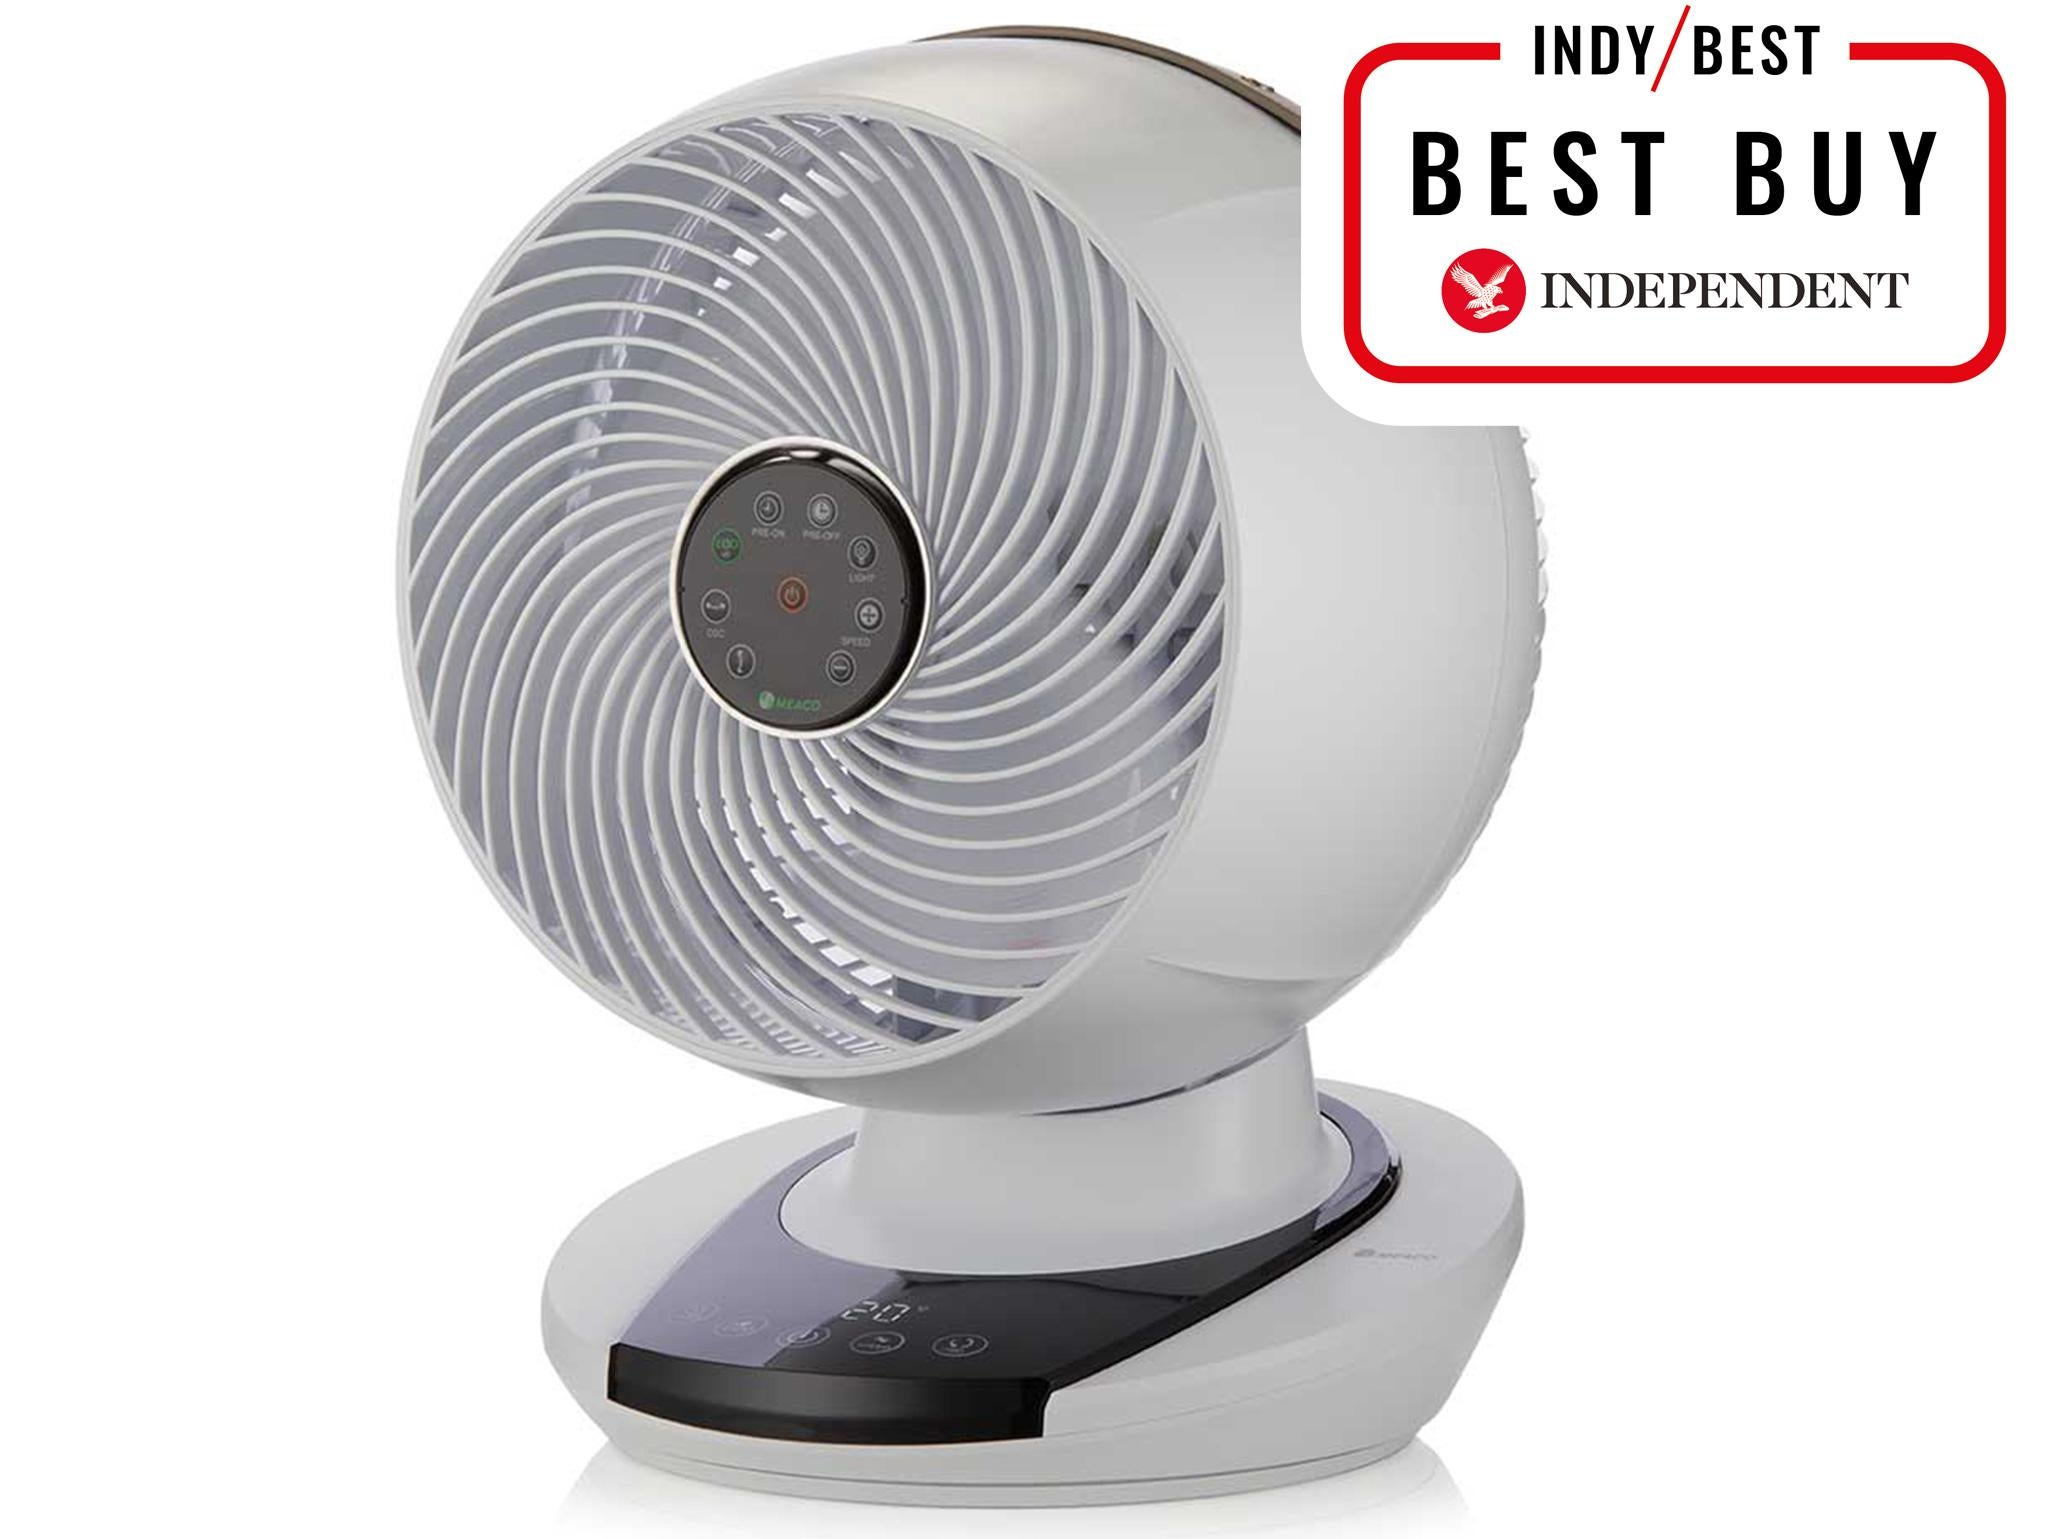 10 Best Cooling Fans The Independent Re Advice On Wiring Electric This